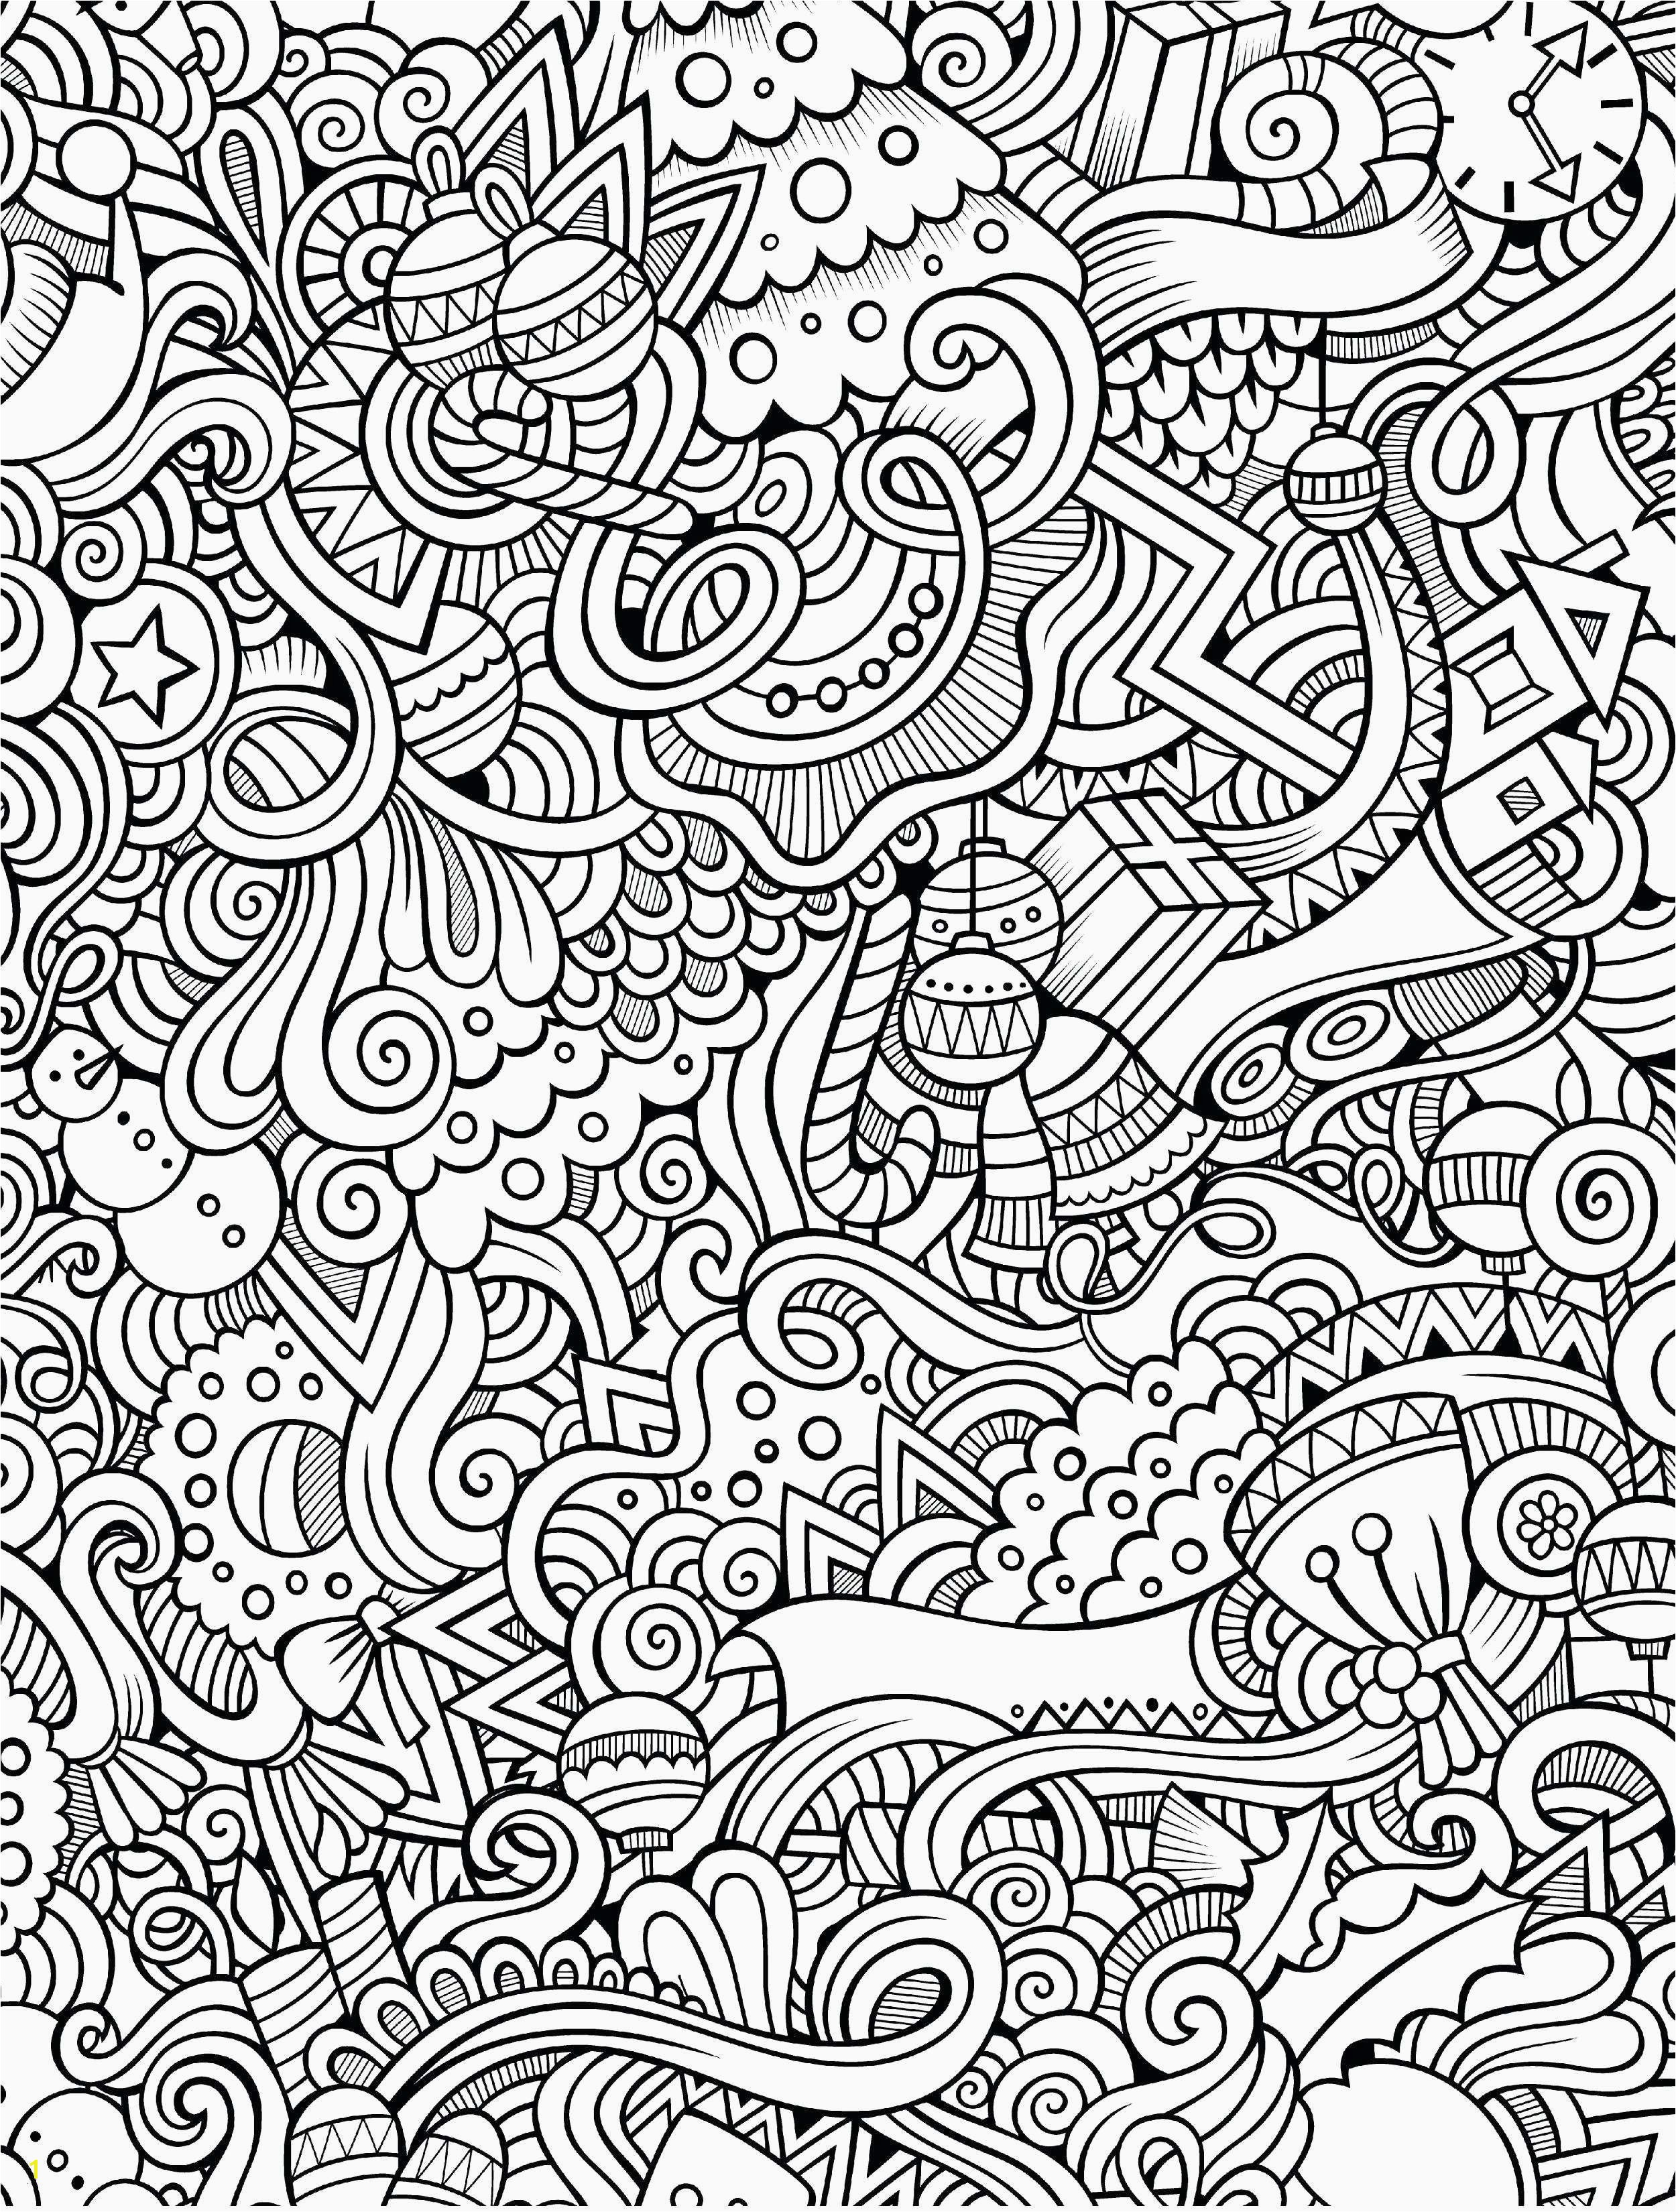 Free Psychedelic Coloring Pages for Adults Katesgrove Page 2 Of 85 Printable Coloring Pages